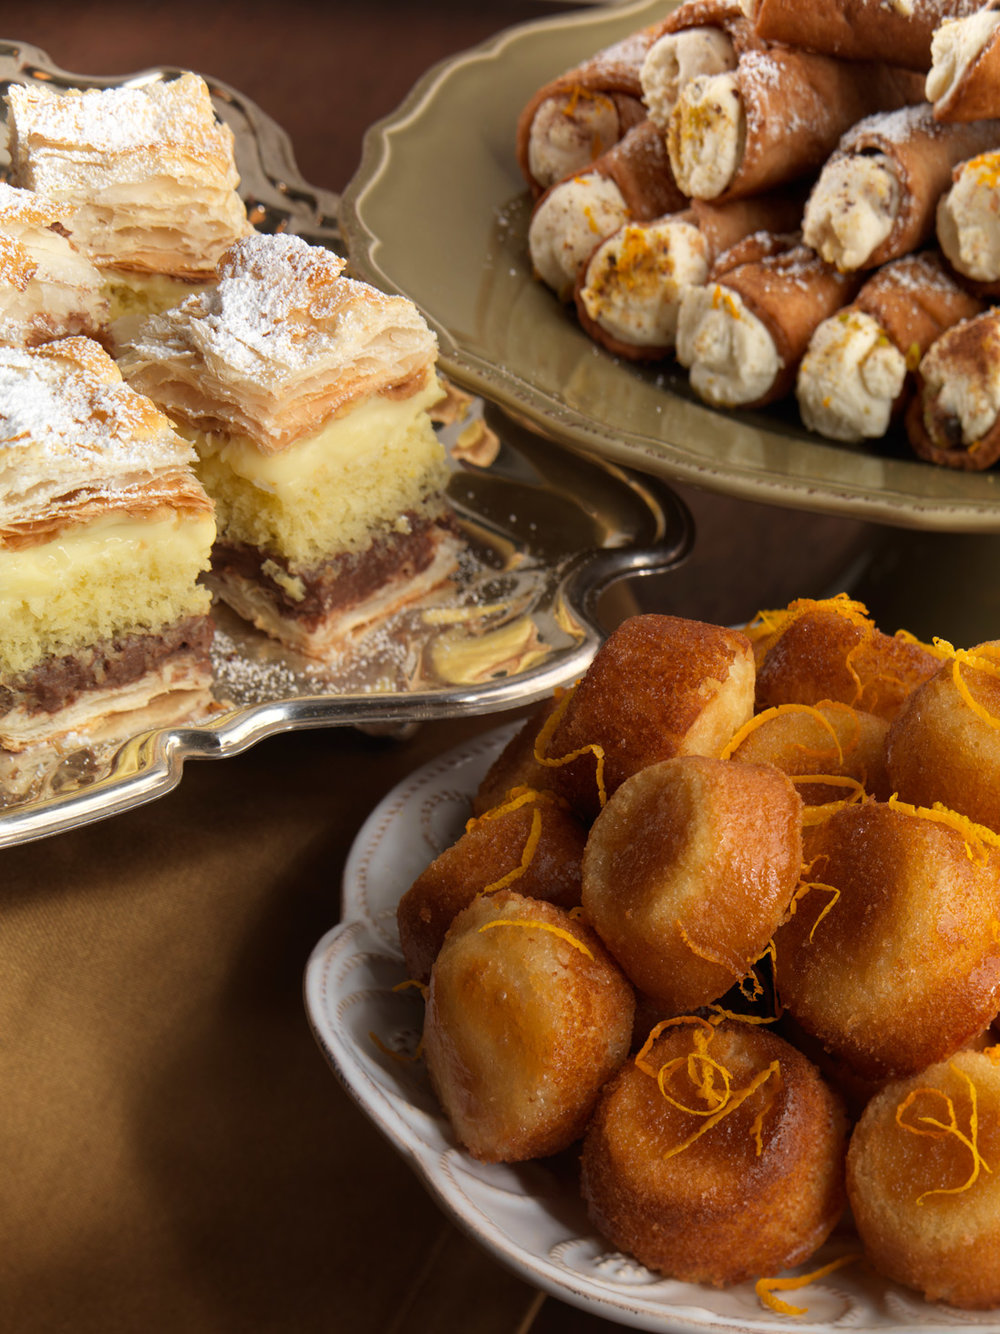 Rum Baba and other sweets